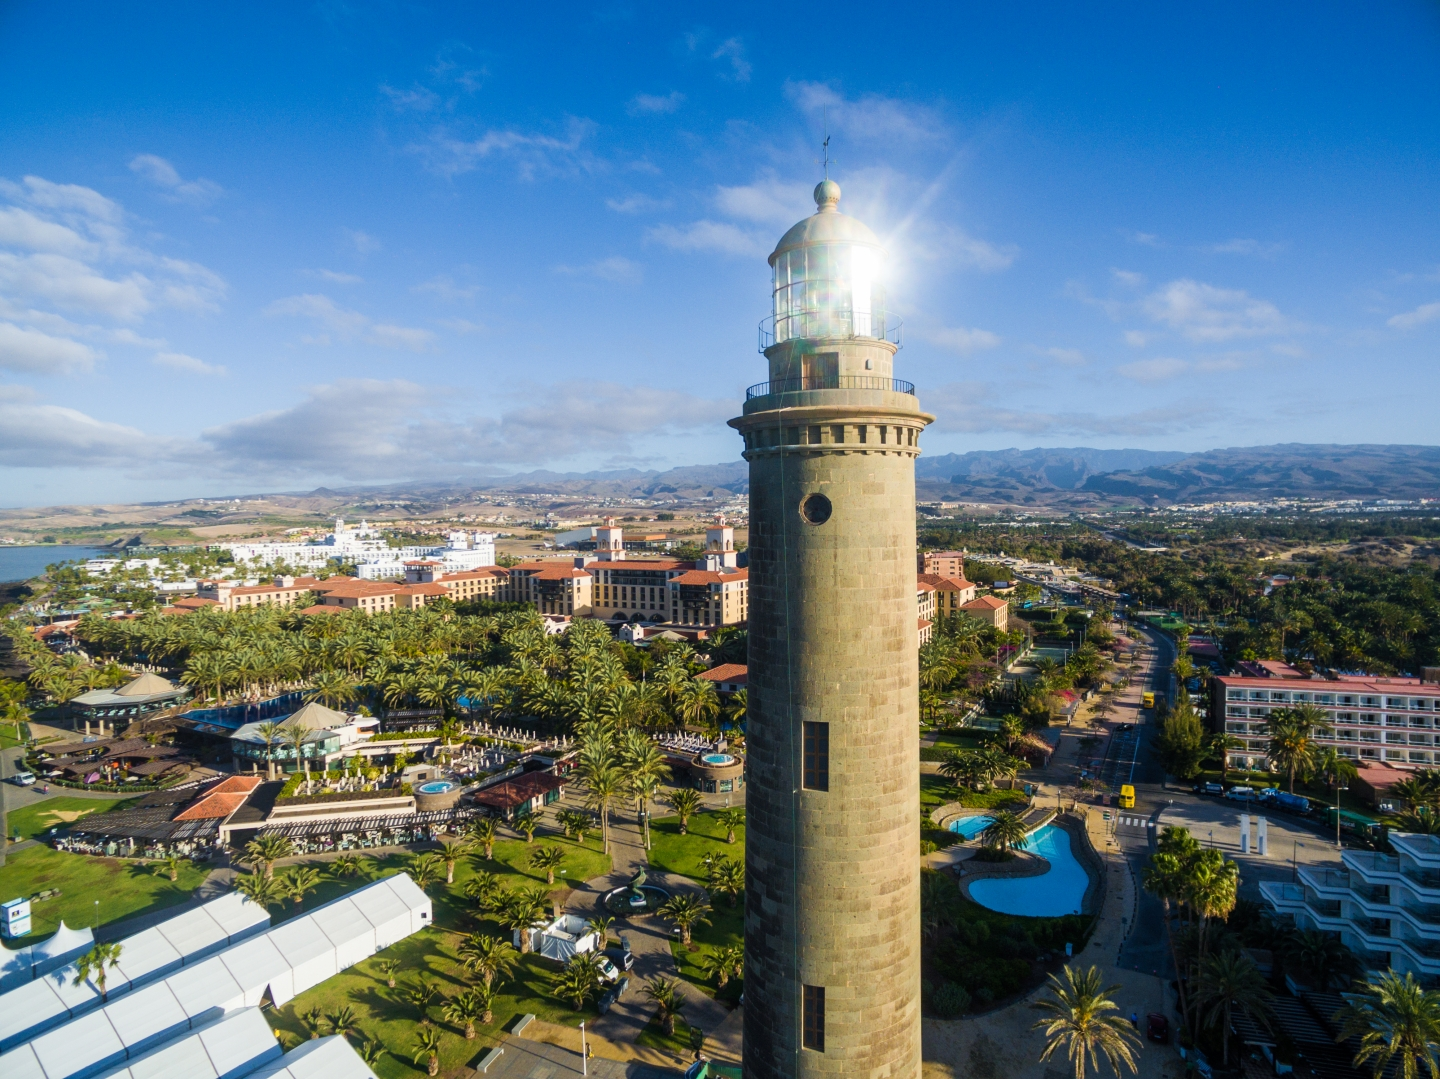 The Faro de Maspalomas lighhouse in south Gran Canaria